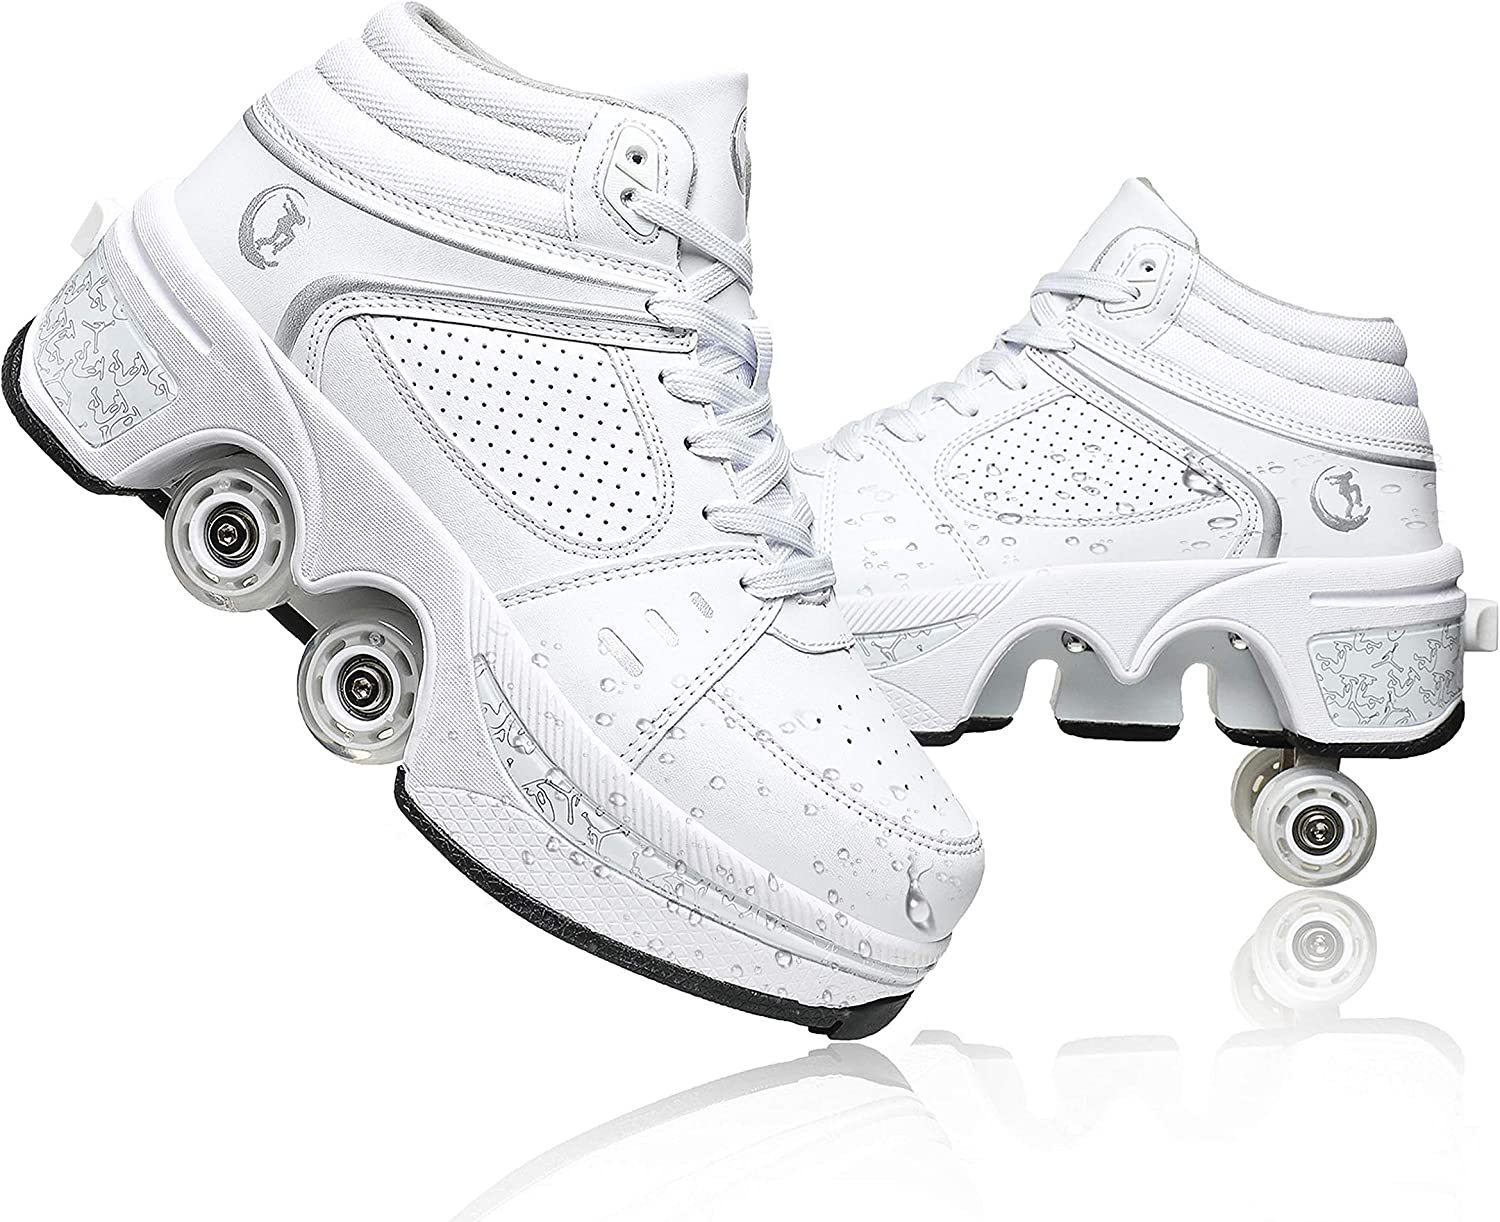 YOUSIOI Invisible Roller Outlet sale feature Skate Automatic Clearance SALE! Limited time! Walking Shoes 2-in-1 P